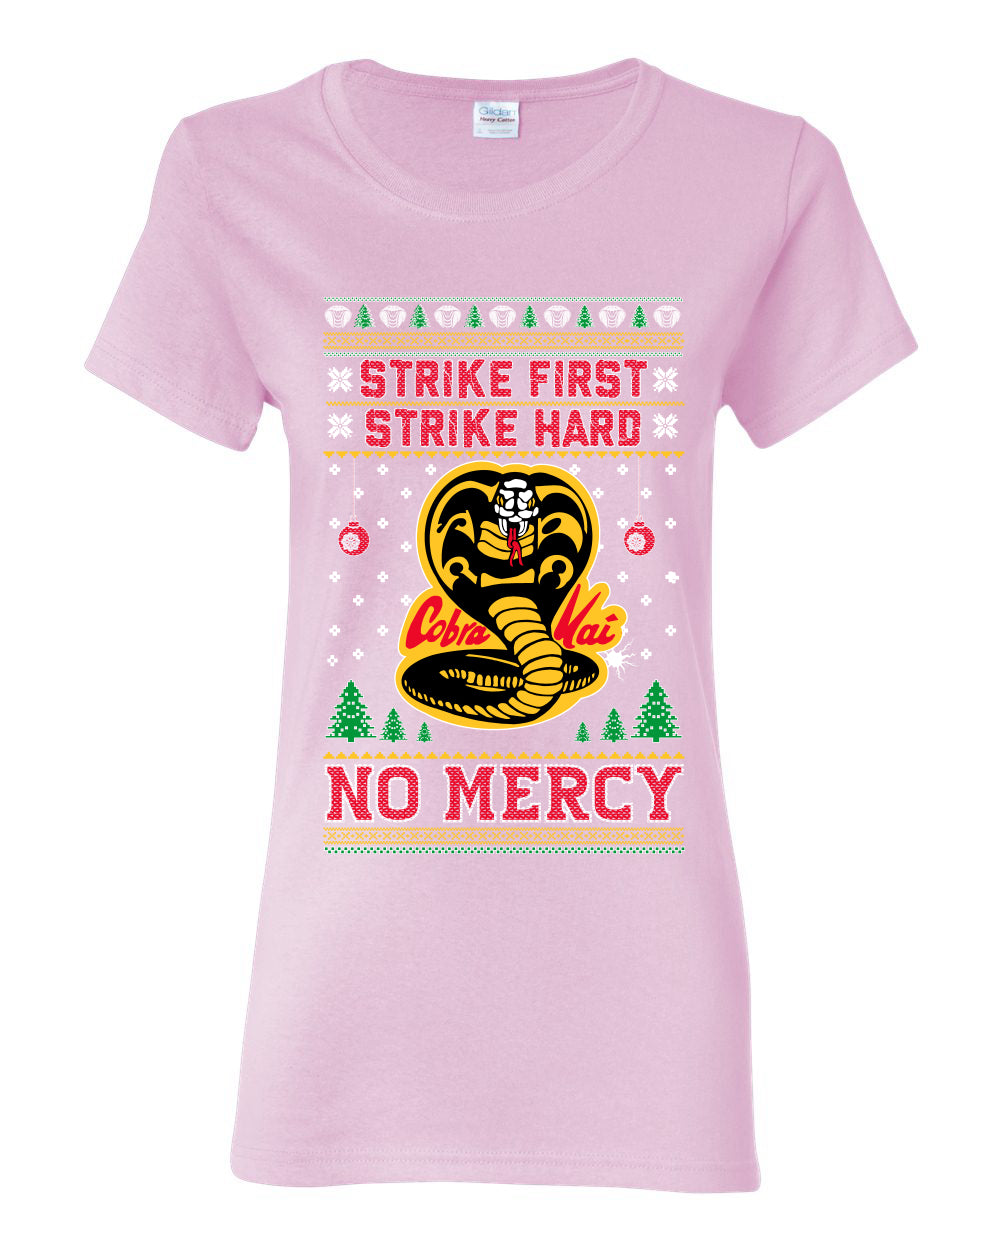 Strike First Strike Hard No Mercy Xmas Ugly Christmas Sweater Womens Graphic T-Shirt